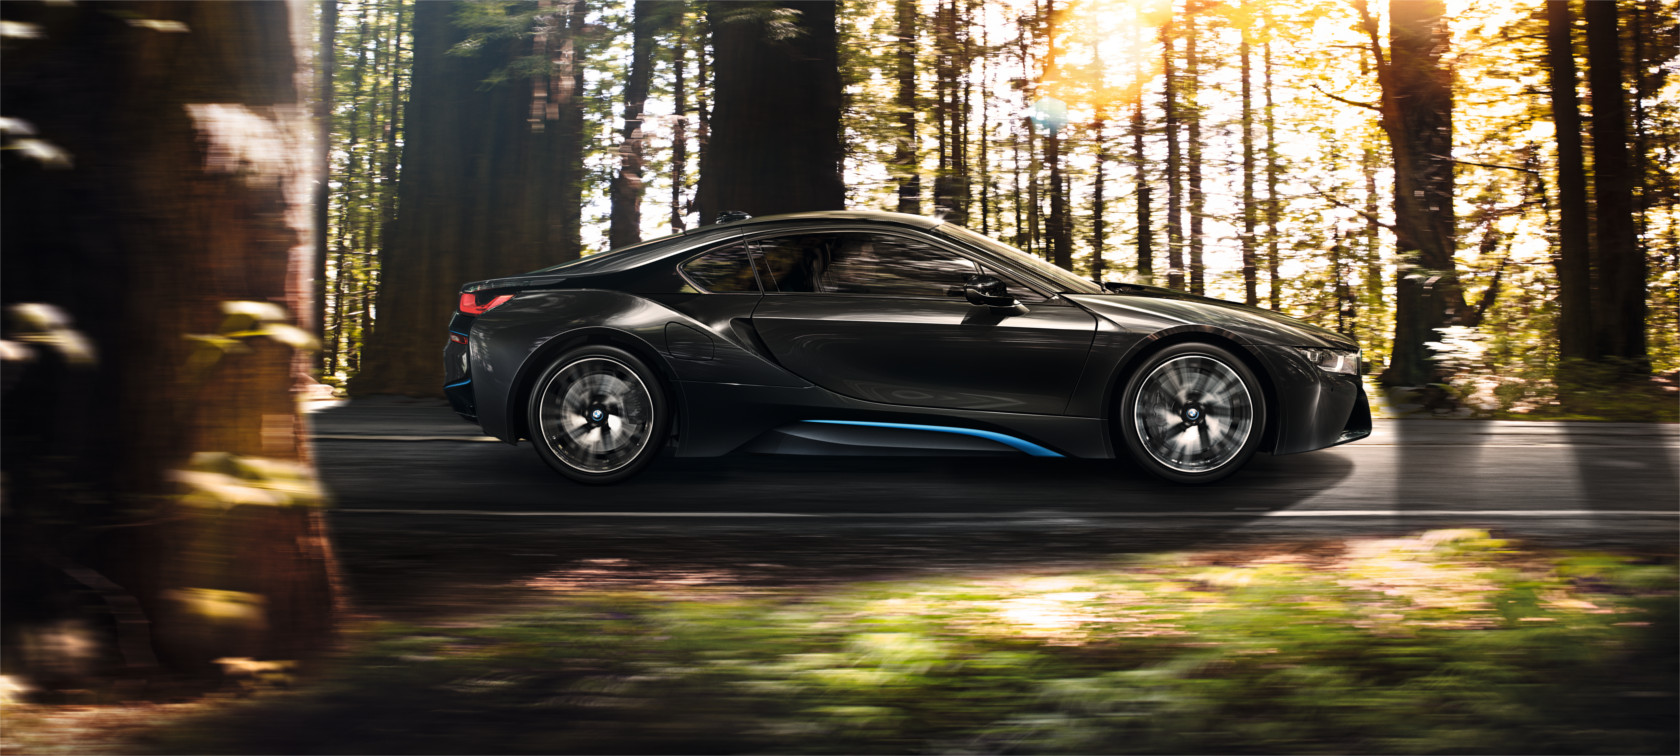 The drive of the BMW i8